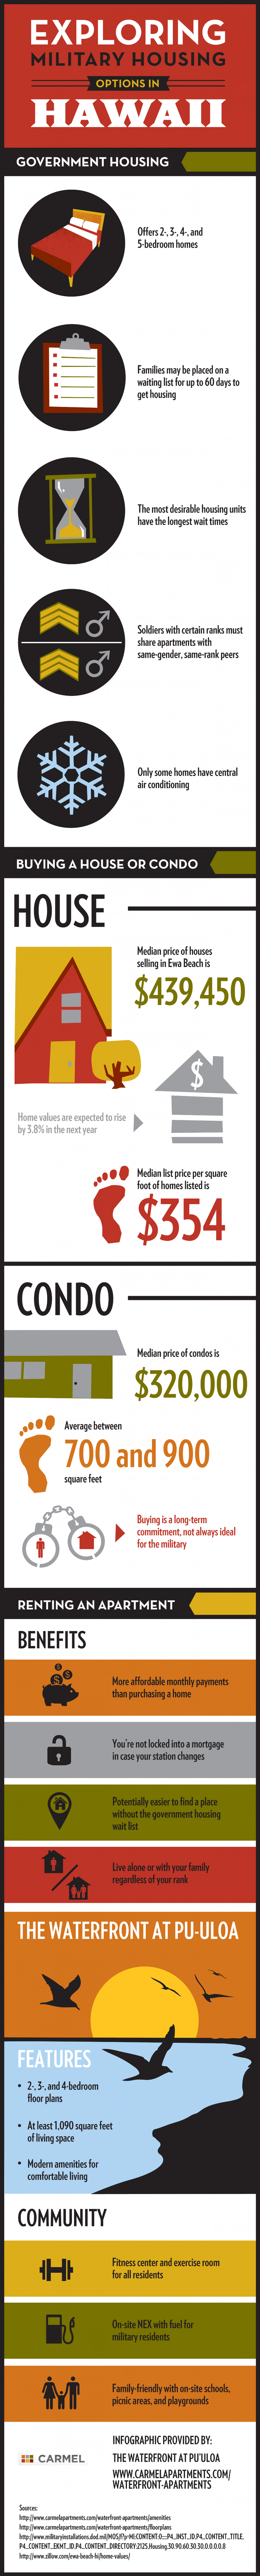 Exploring Military Housing Options in Hawaii Infographic